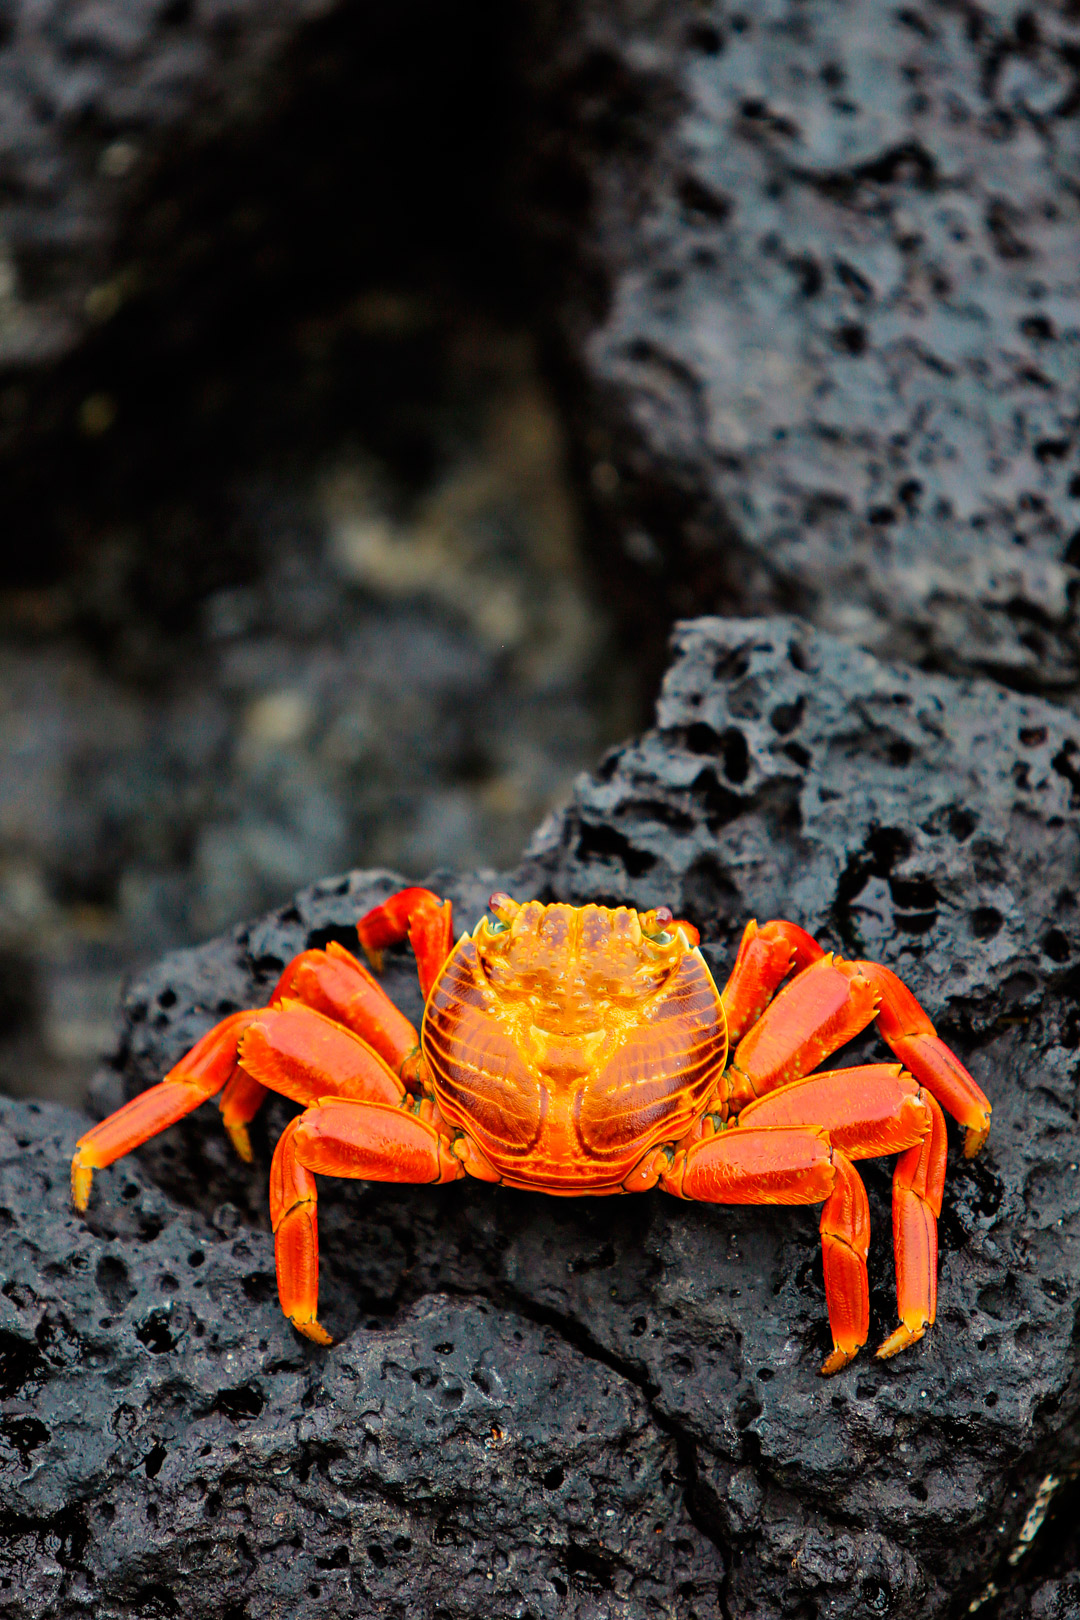 Sally Lightfoot Crab in Puerto Ayora, Santa Cruz Island, Ecuador - Are you visiting the Galapagos Islands? Save this pin and click through to see more details on the 13 best things to do in Galapagos Islands. This post includes the top Galapagos Islands activities, what to see, best places to see wildlife, and essential tips for your visit, and more // Local Adventurer #galapagosislands #galapagos #ecuador #southamerica